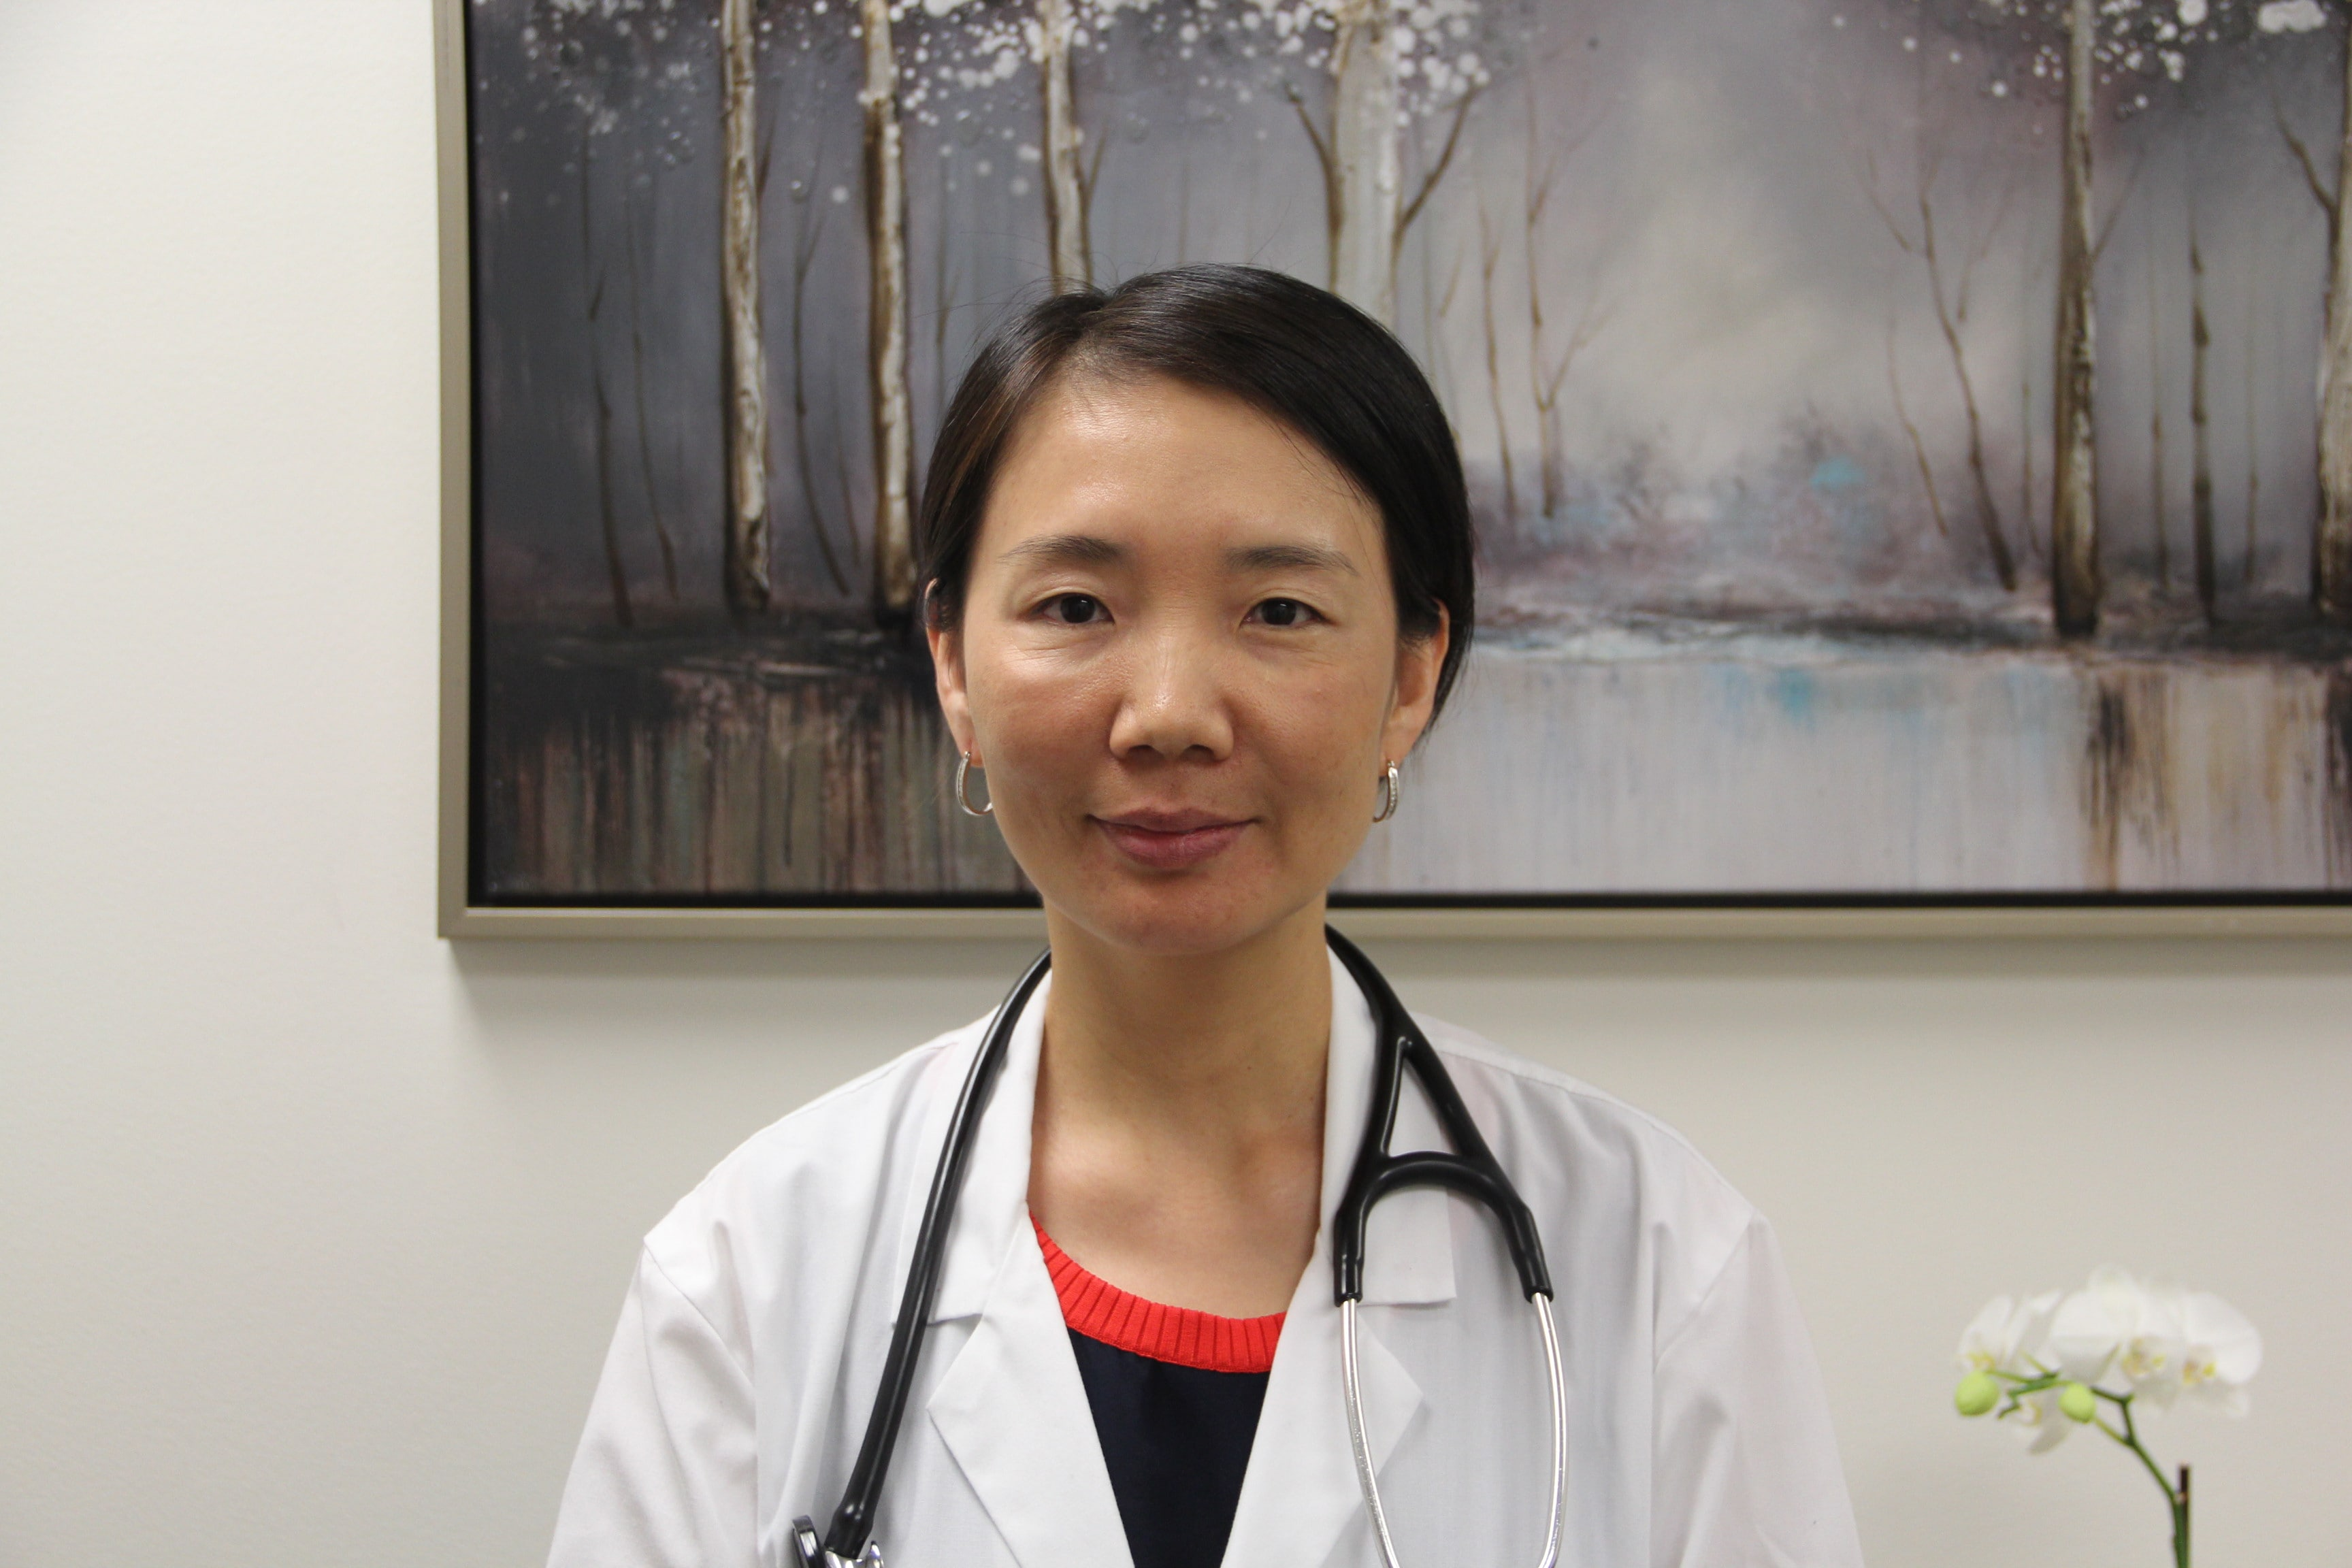 Dr. Jie Ling MD